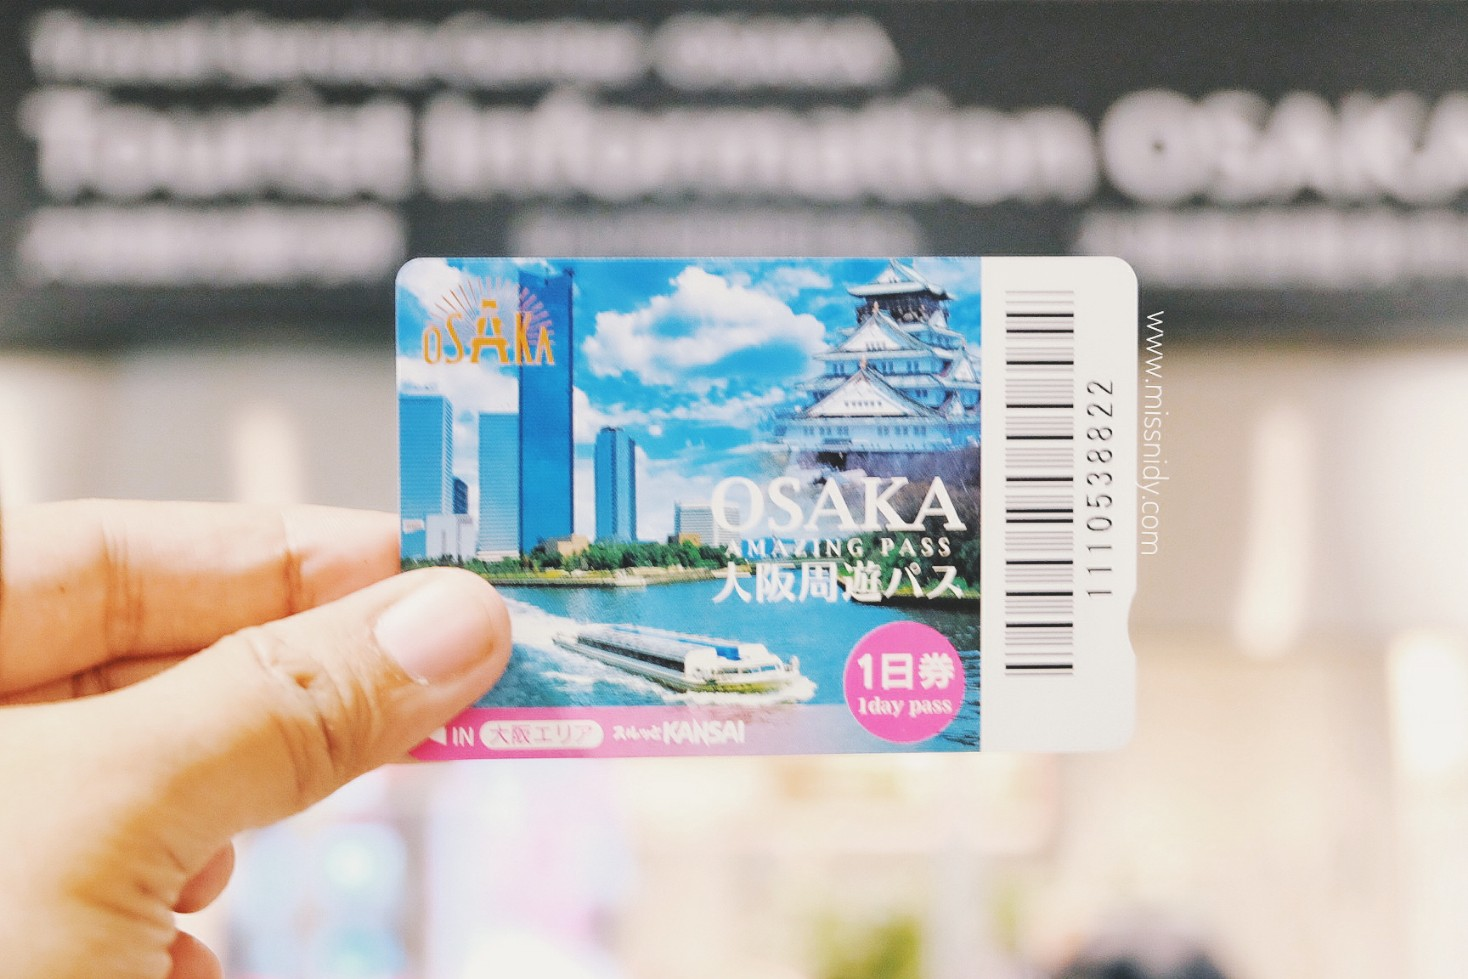 osaka amazing pass - one day pass